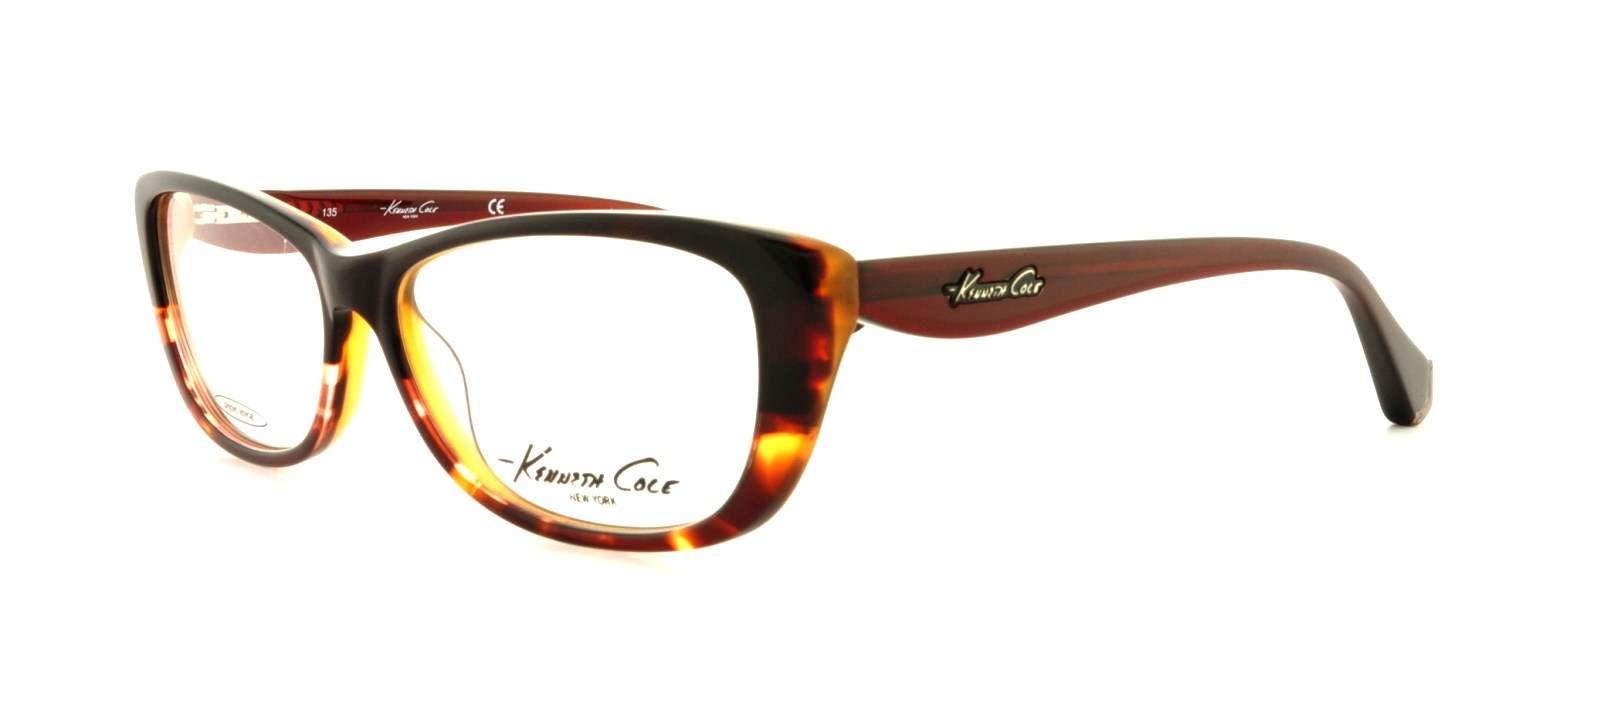 Picture of Kenneth Cole New York KC 0202